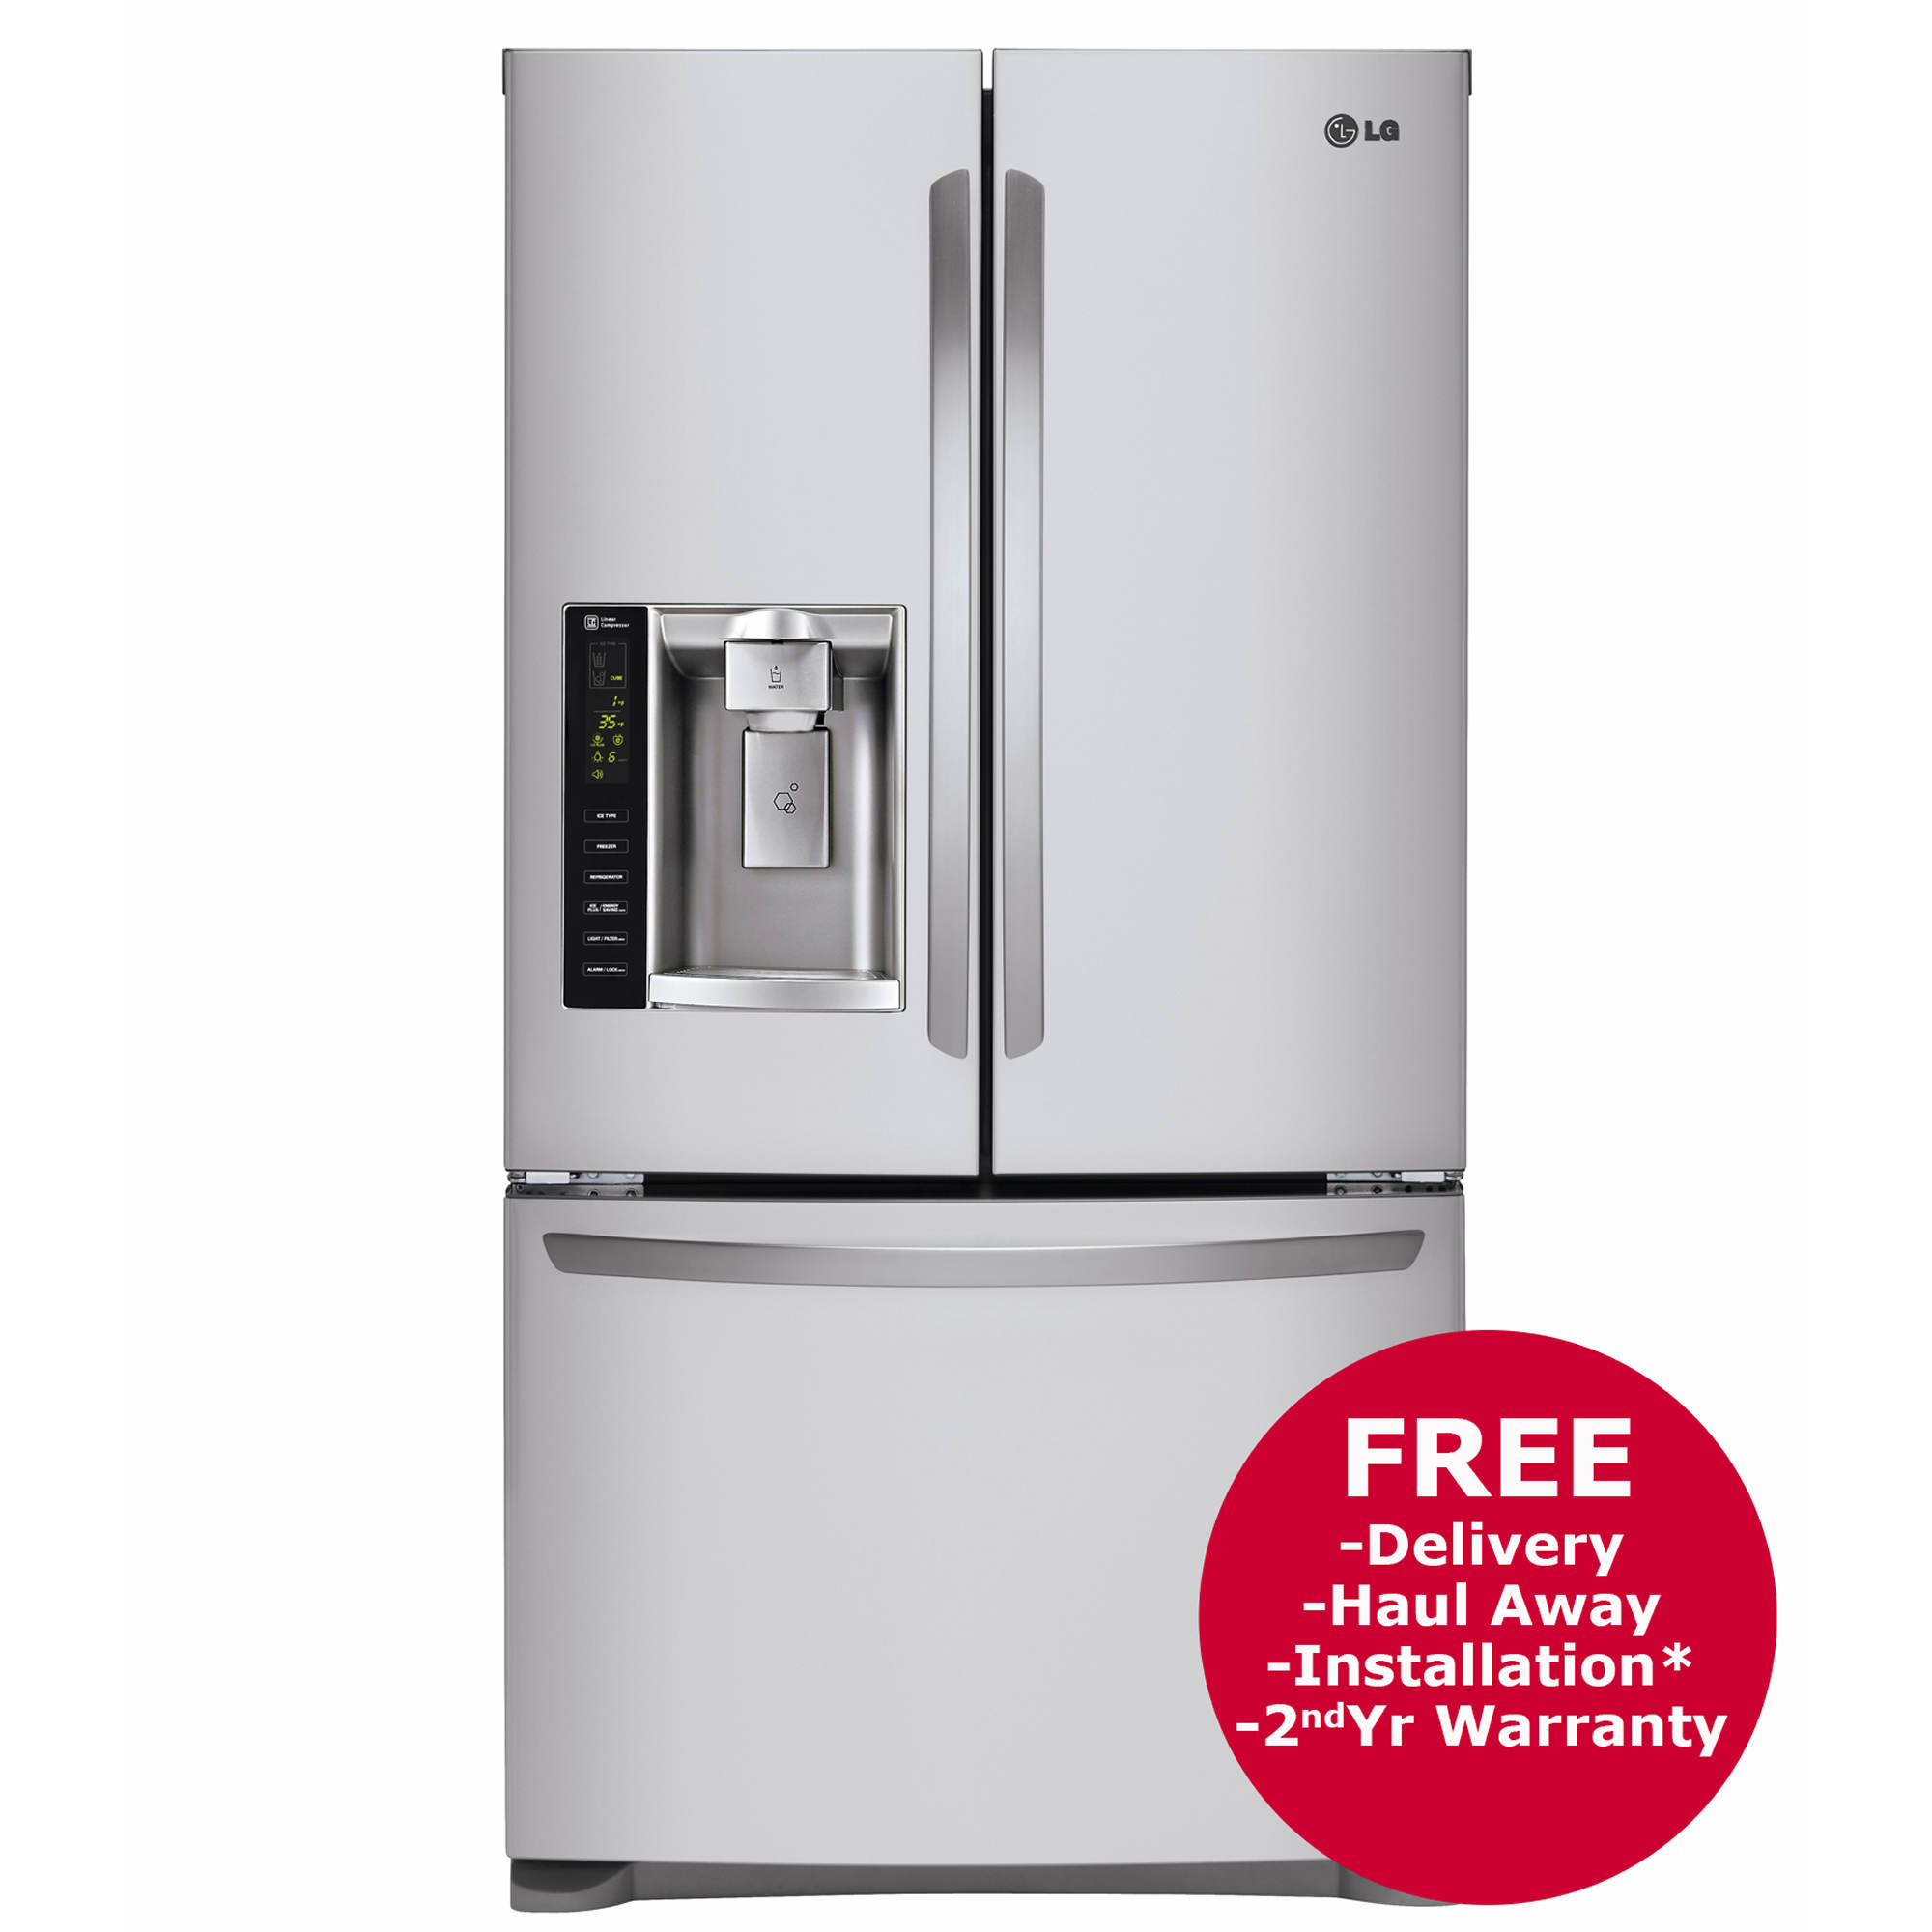 direct doors freezer free frost lg fridge refrigerator tht door style american